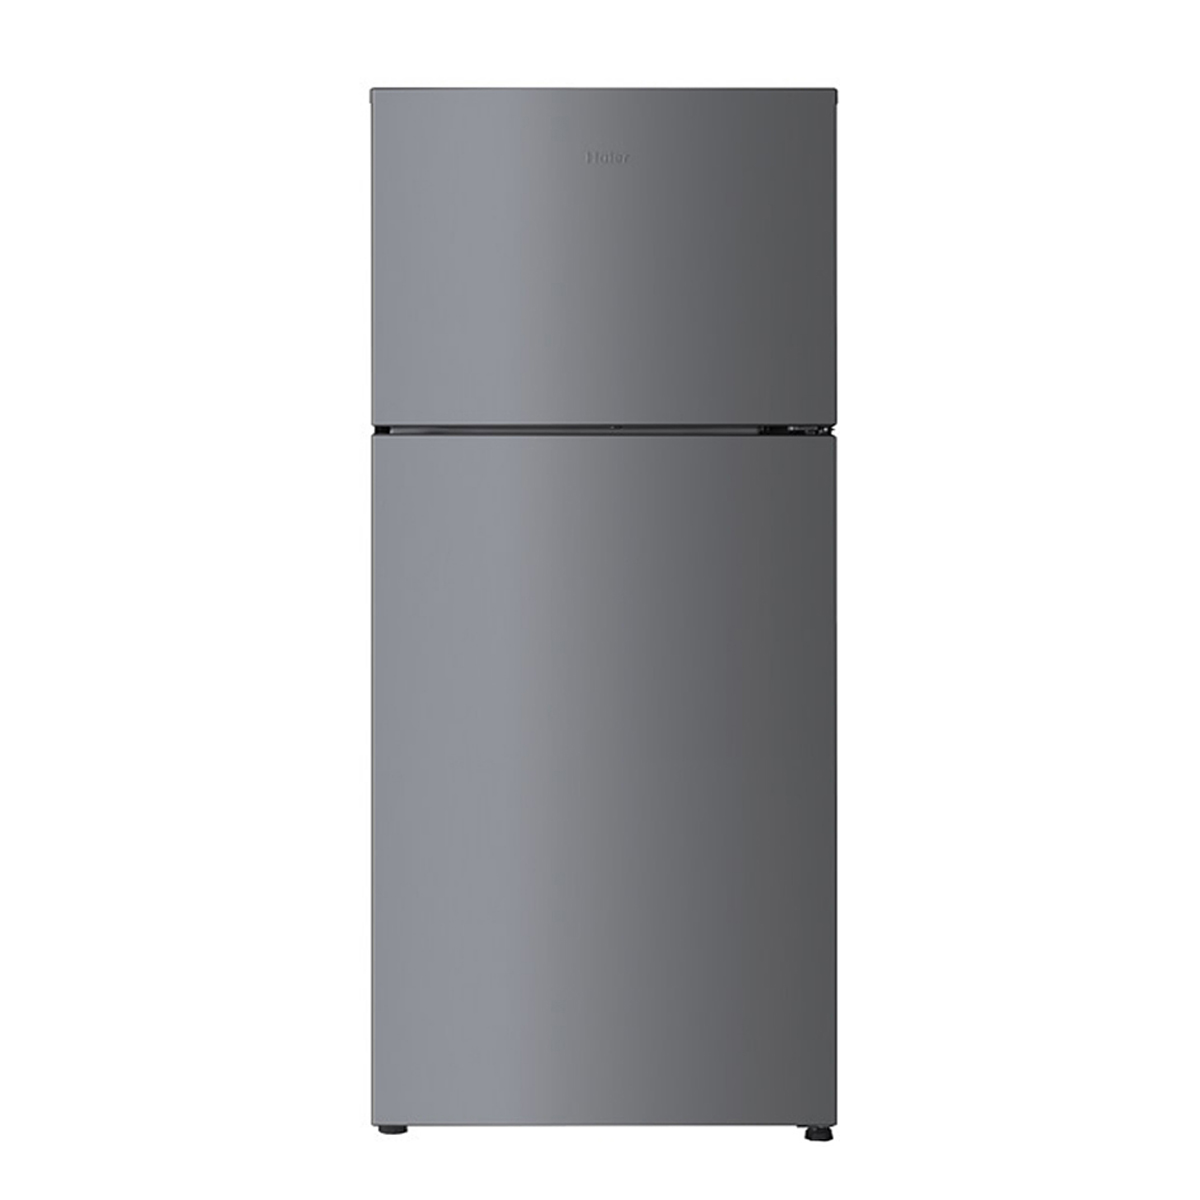 Haier 224L Top Mount Fridge HRF224FS2